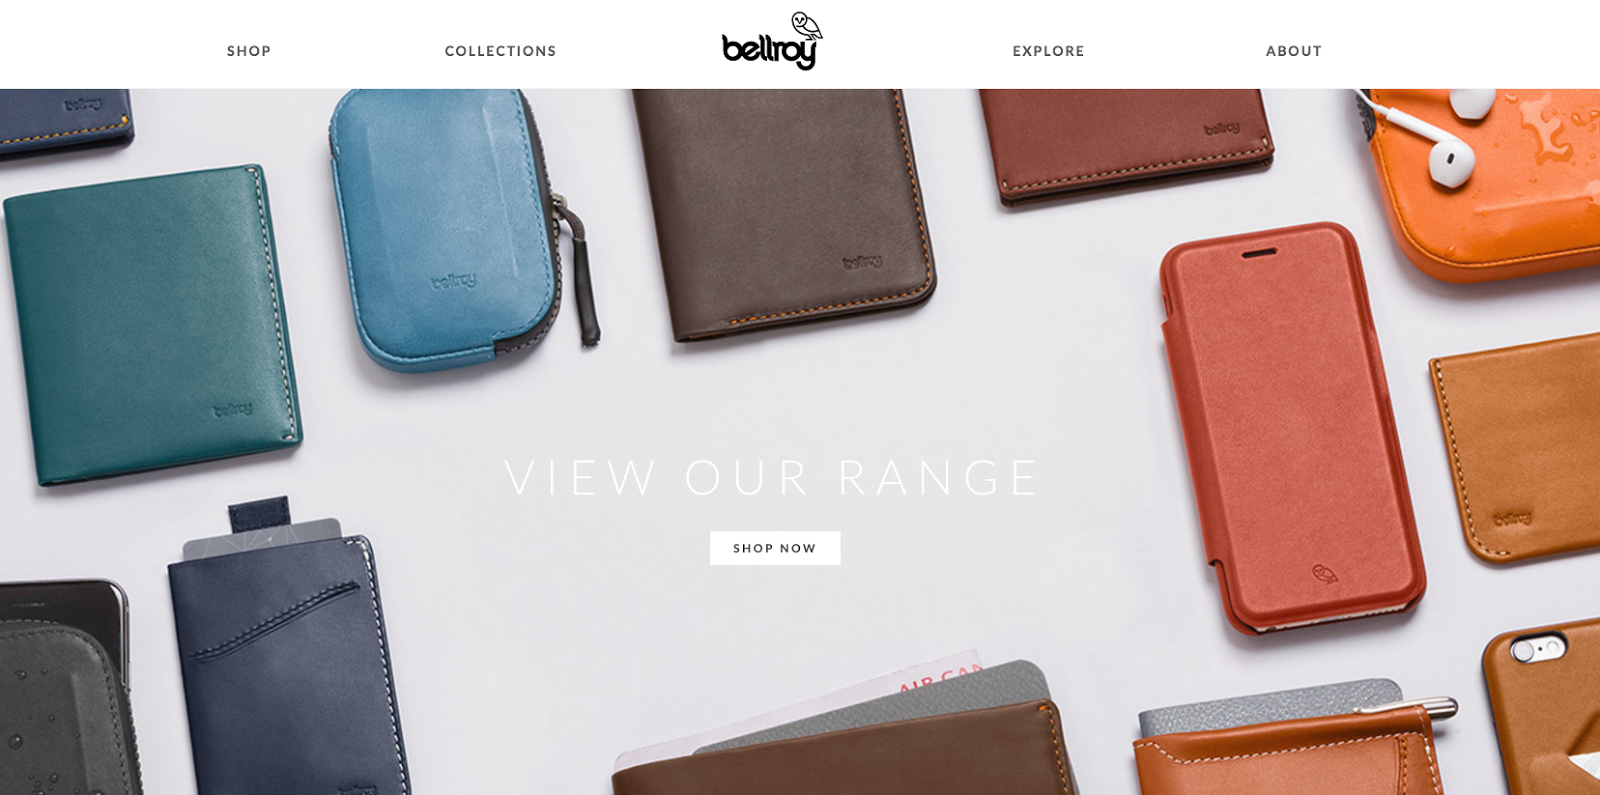 Bellroy on site photography impression